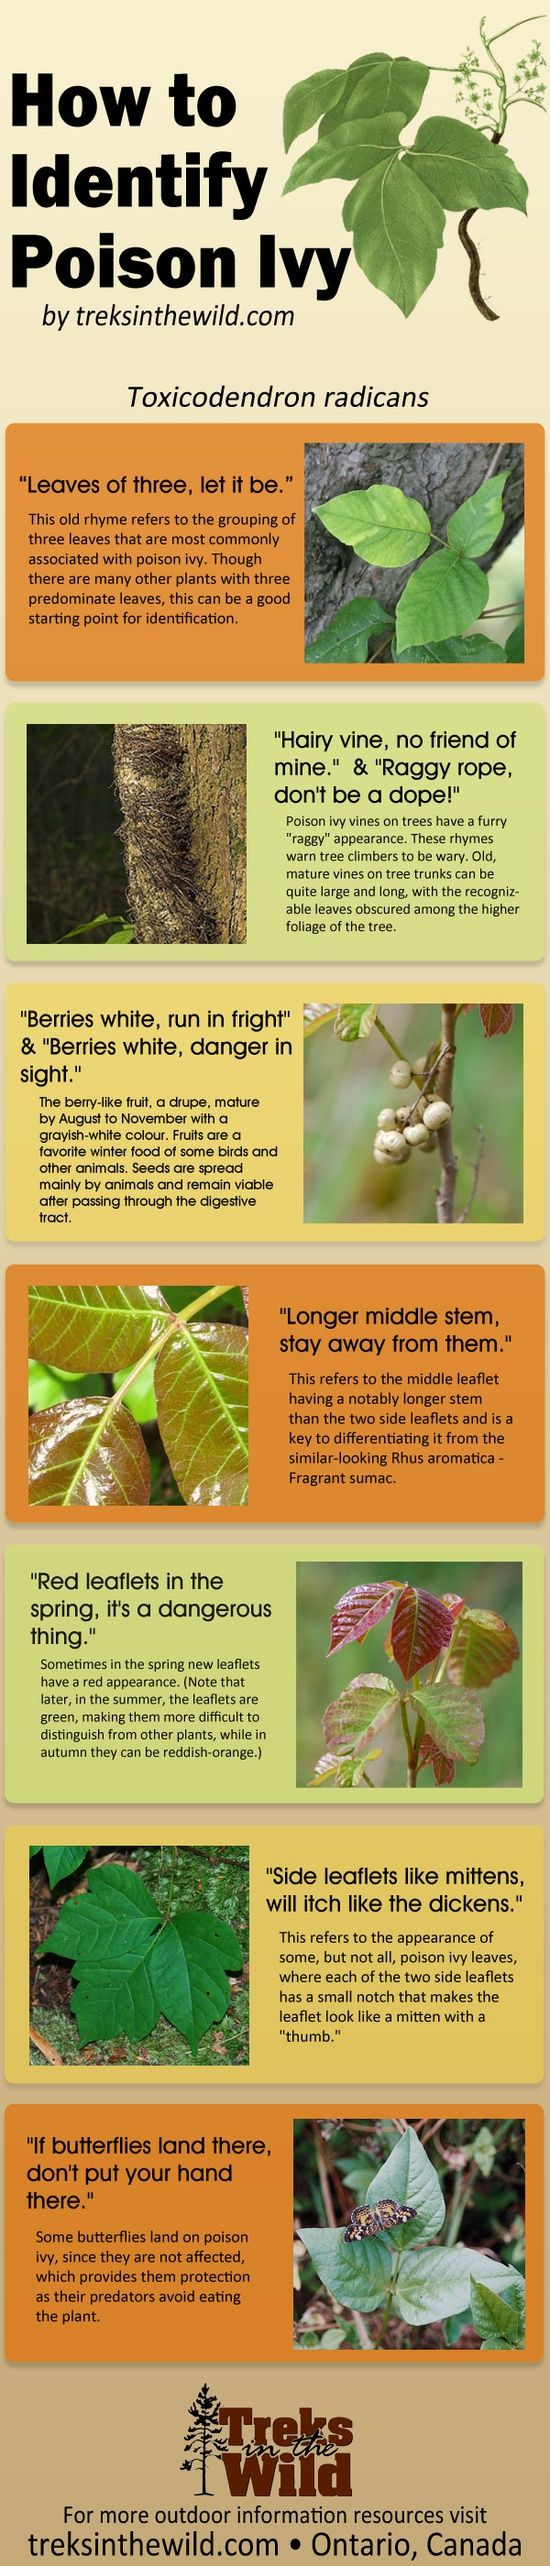 How To Identify Poison Ivy - Infograph